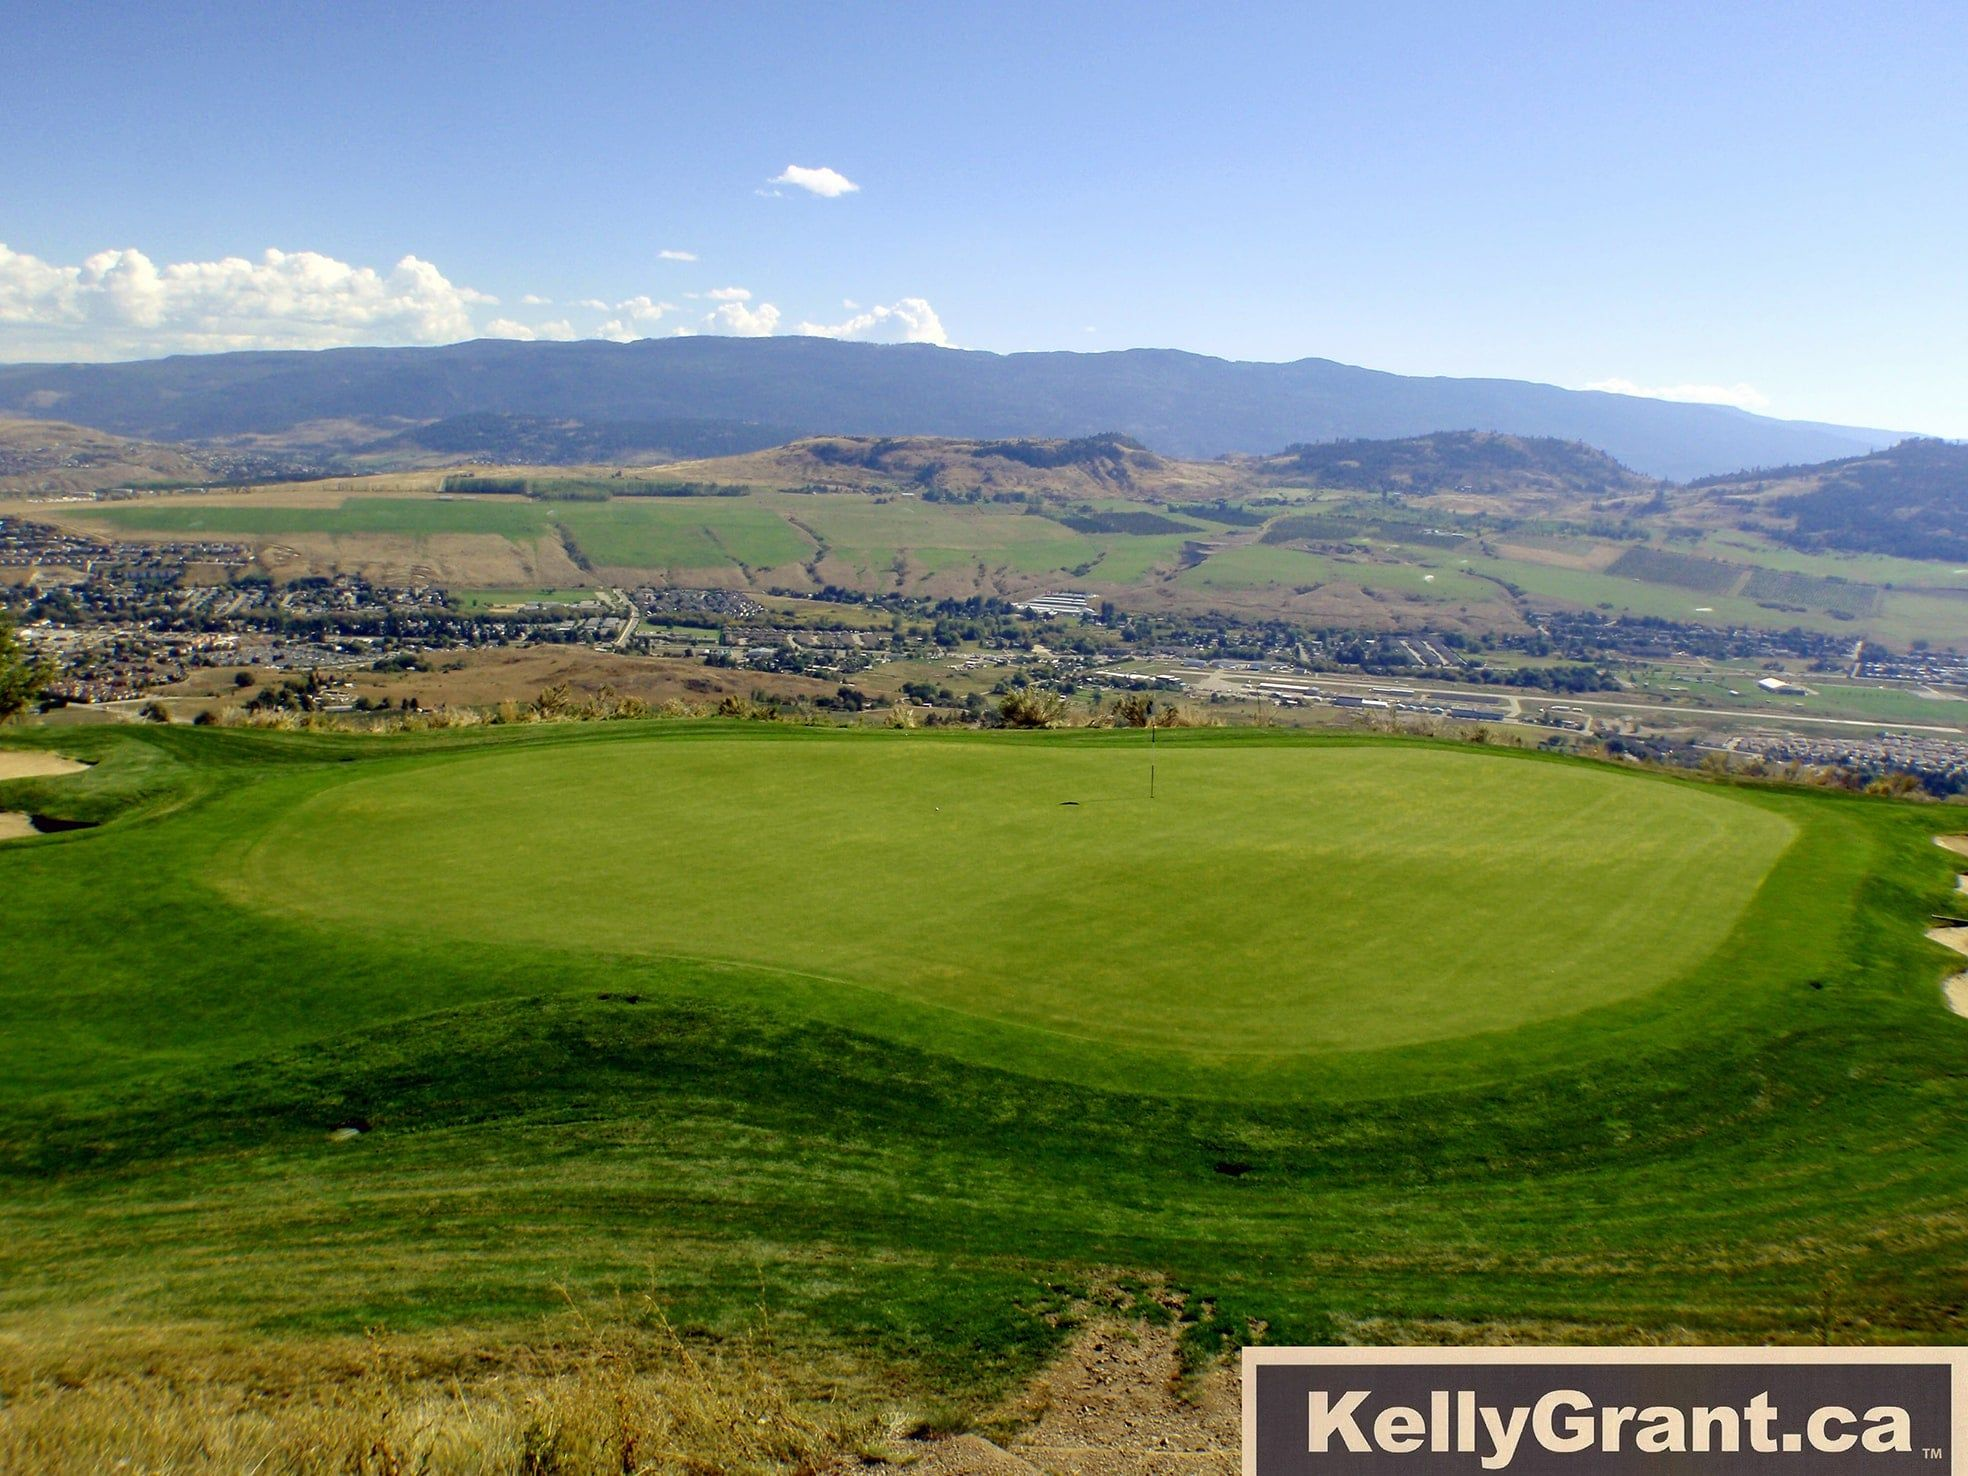 Kelly-Grant-BC golf club image 3